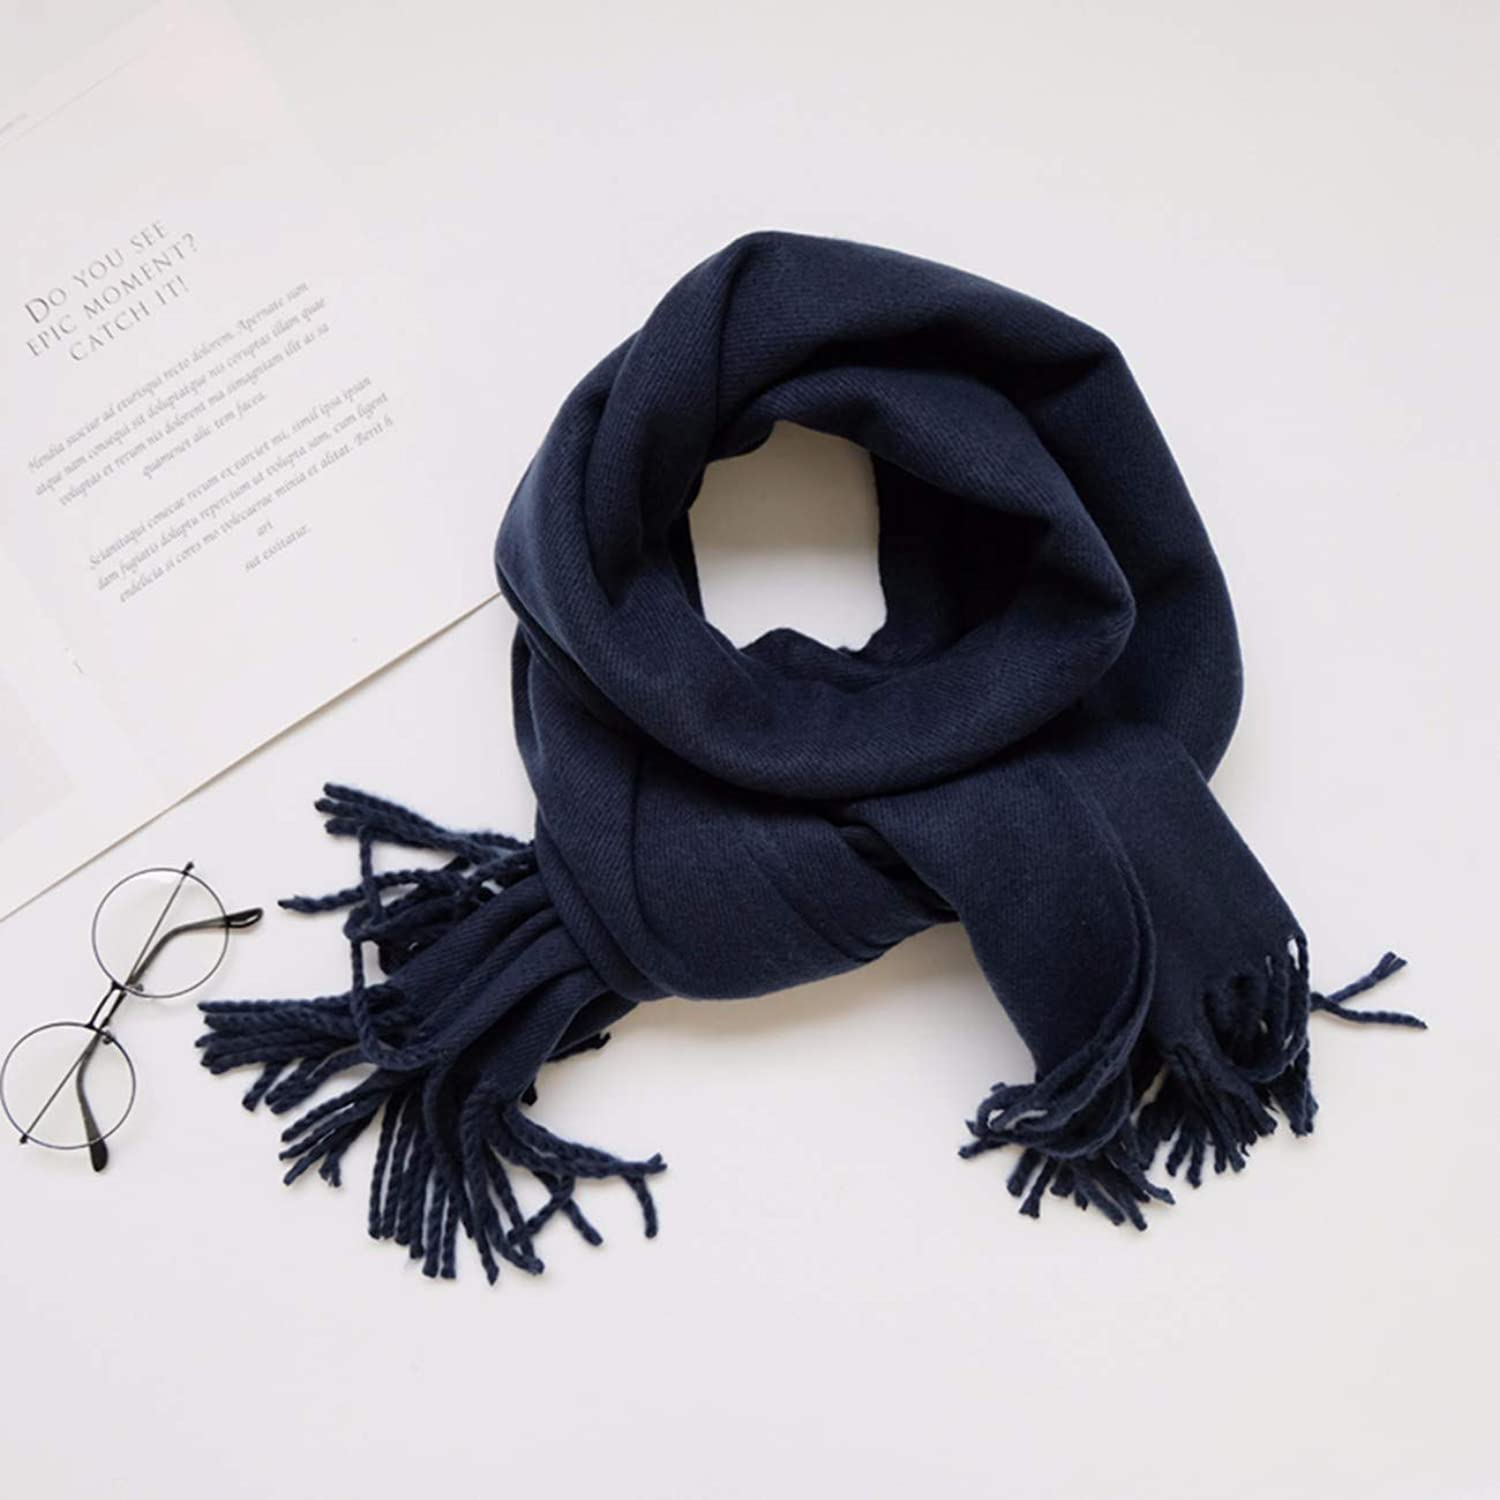 Thickened Pure color Cashmere Scarf, DualPurpose Shawl and Long Neck Scarf.